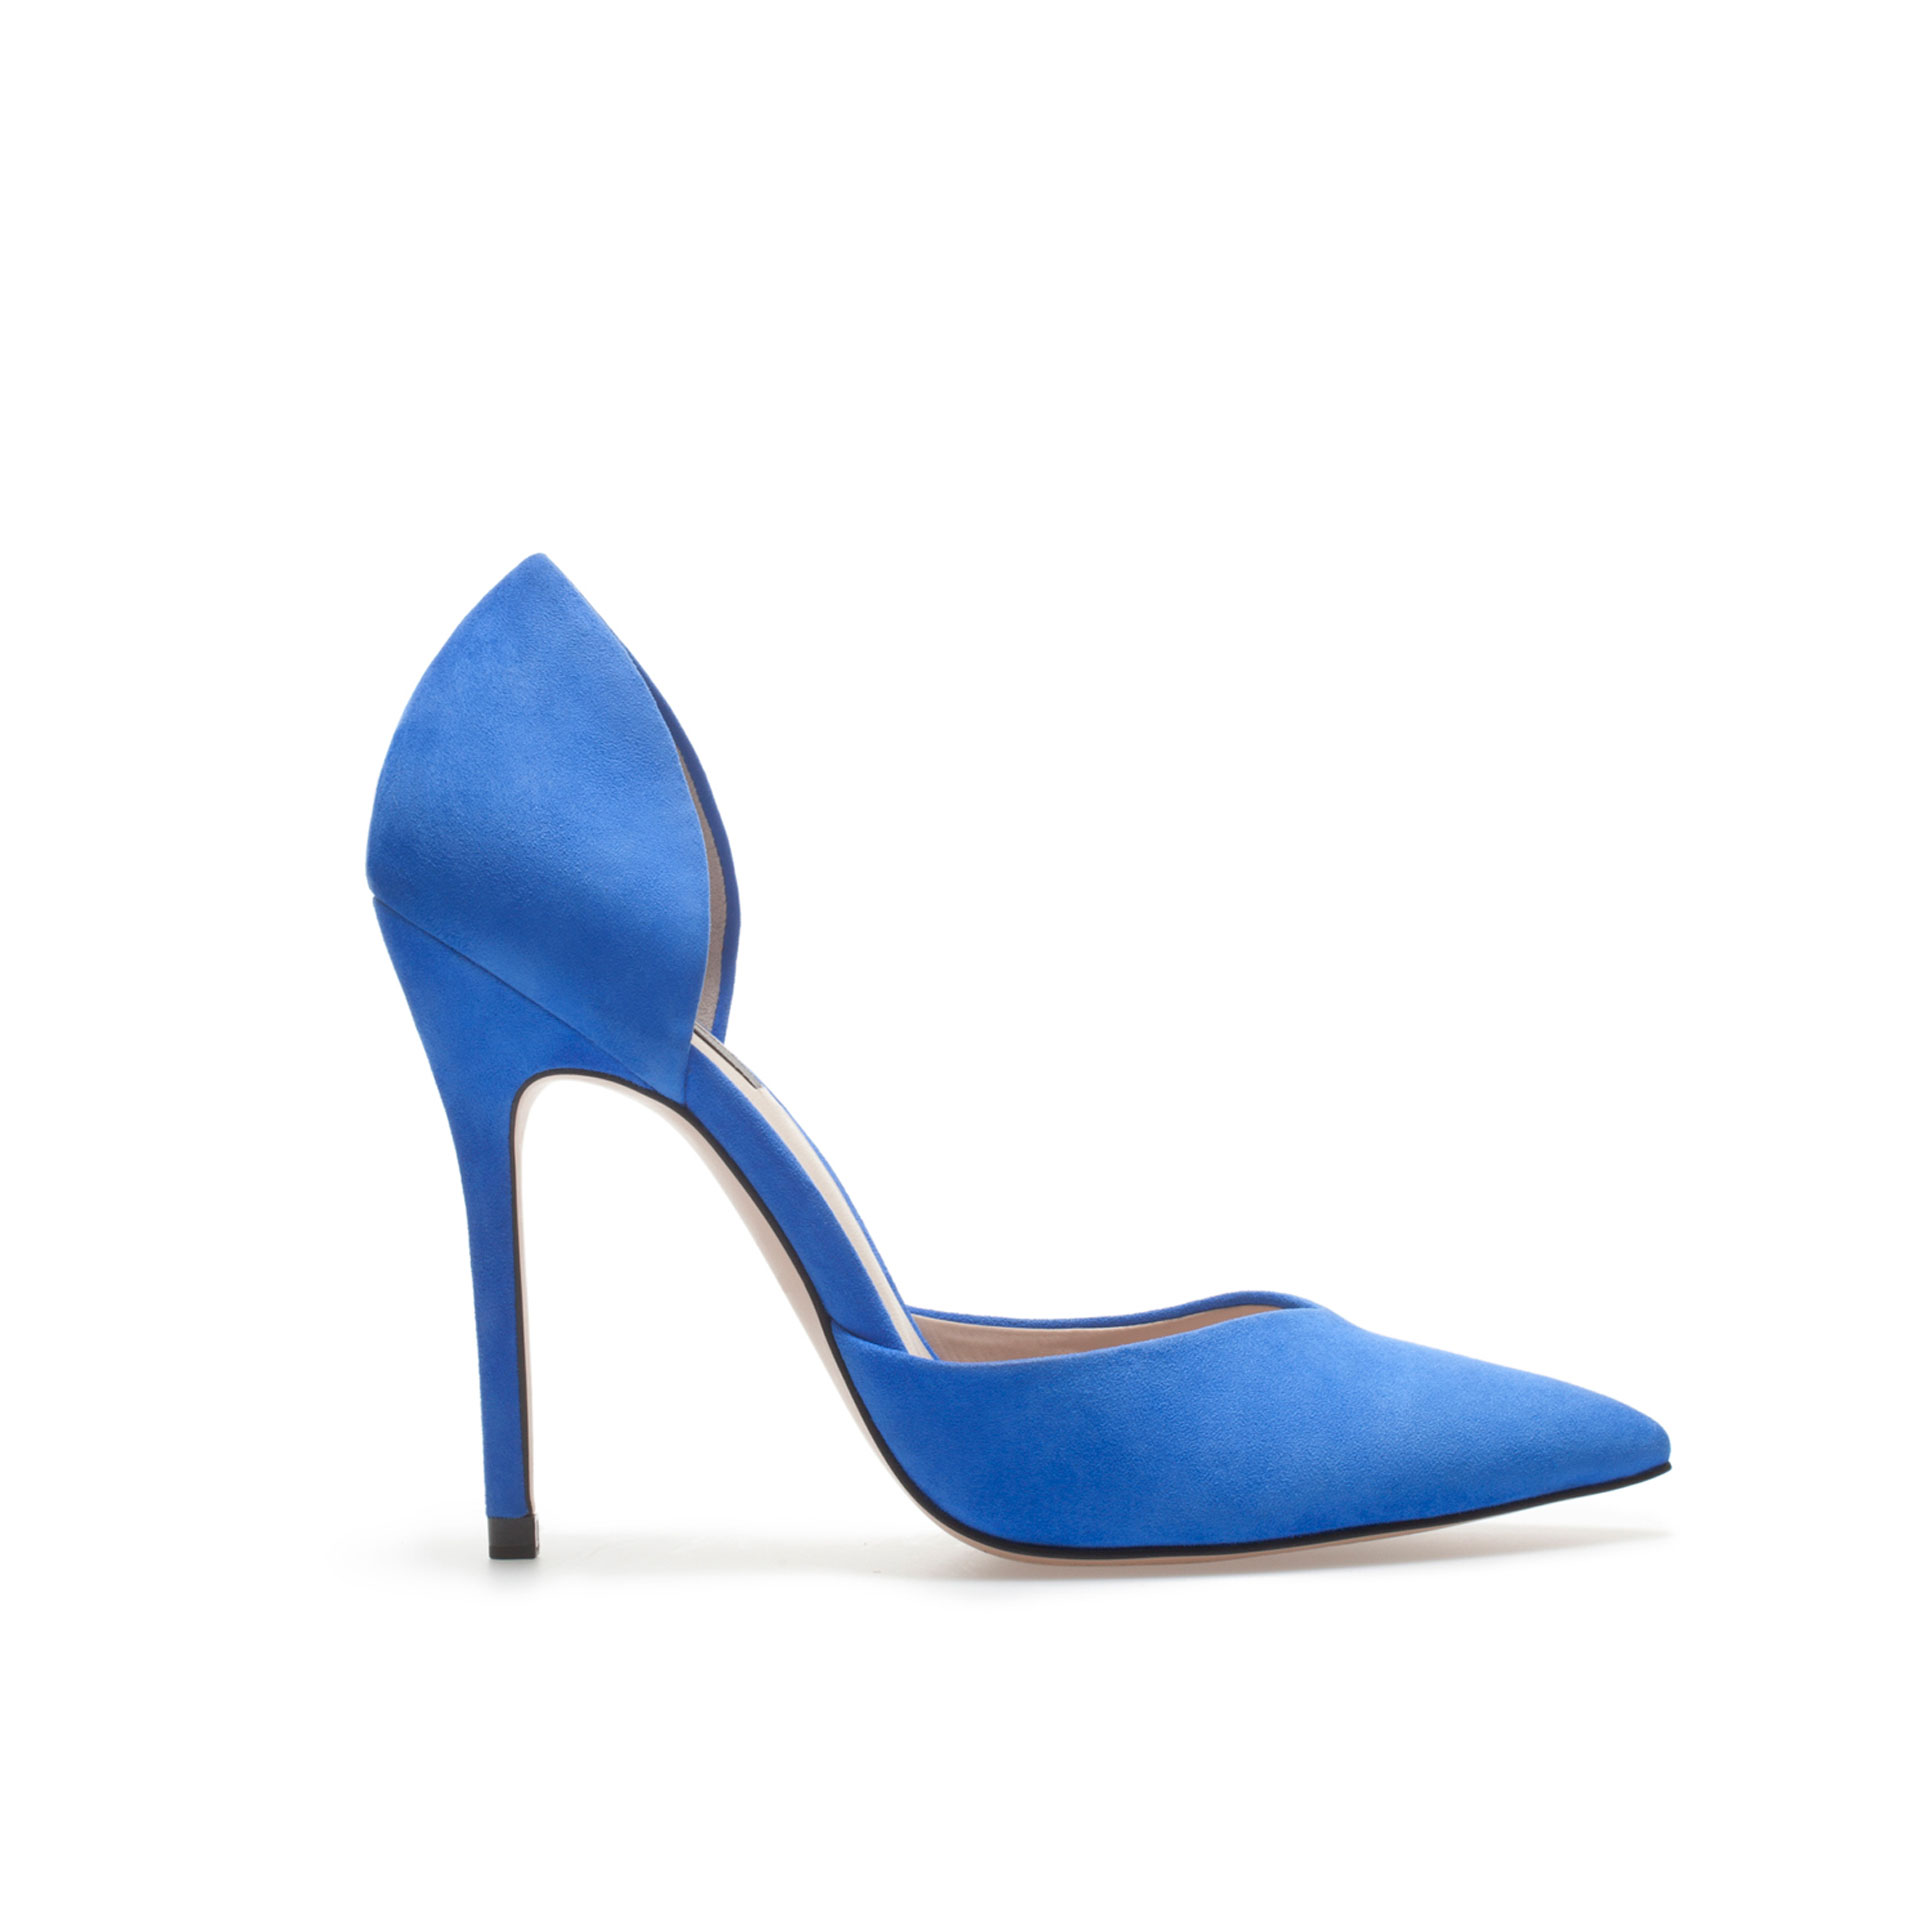 119b7b8834c8 Shoeniverse  ZARA Blue High Heel D orsay Shoe